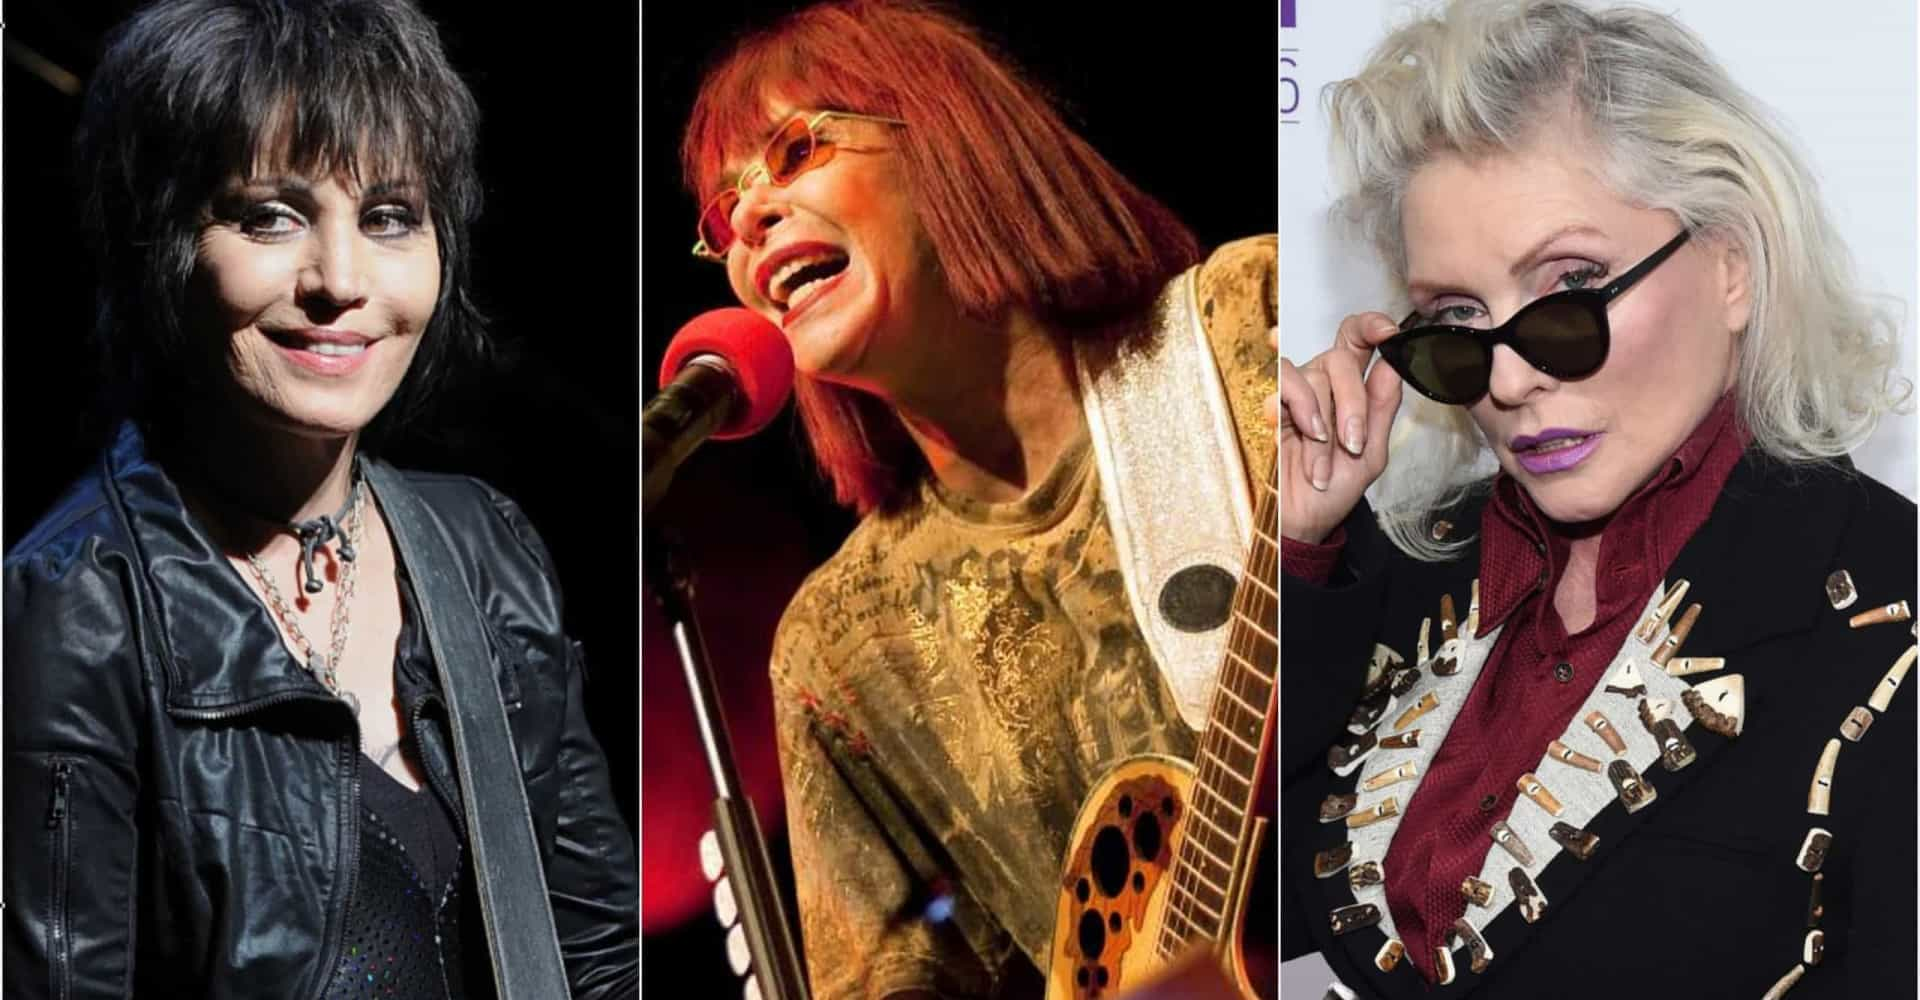 As divas do rock mais inspiradoras e autênticas!